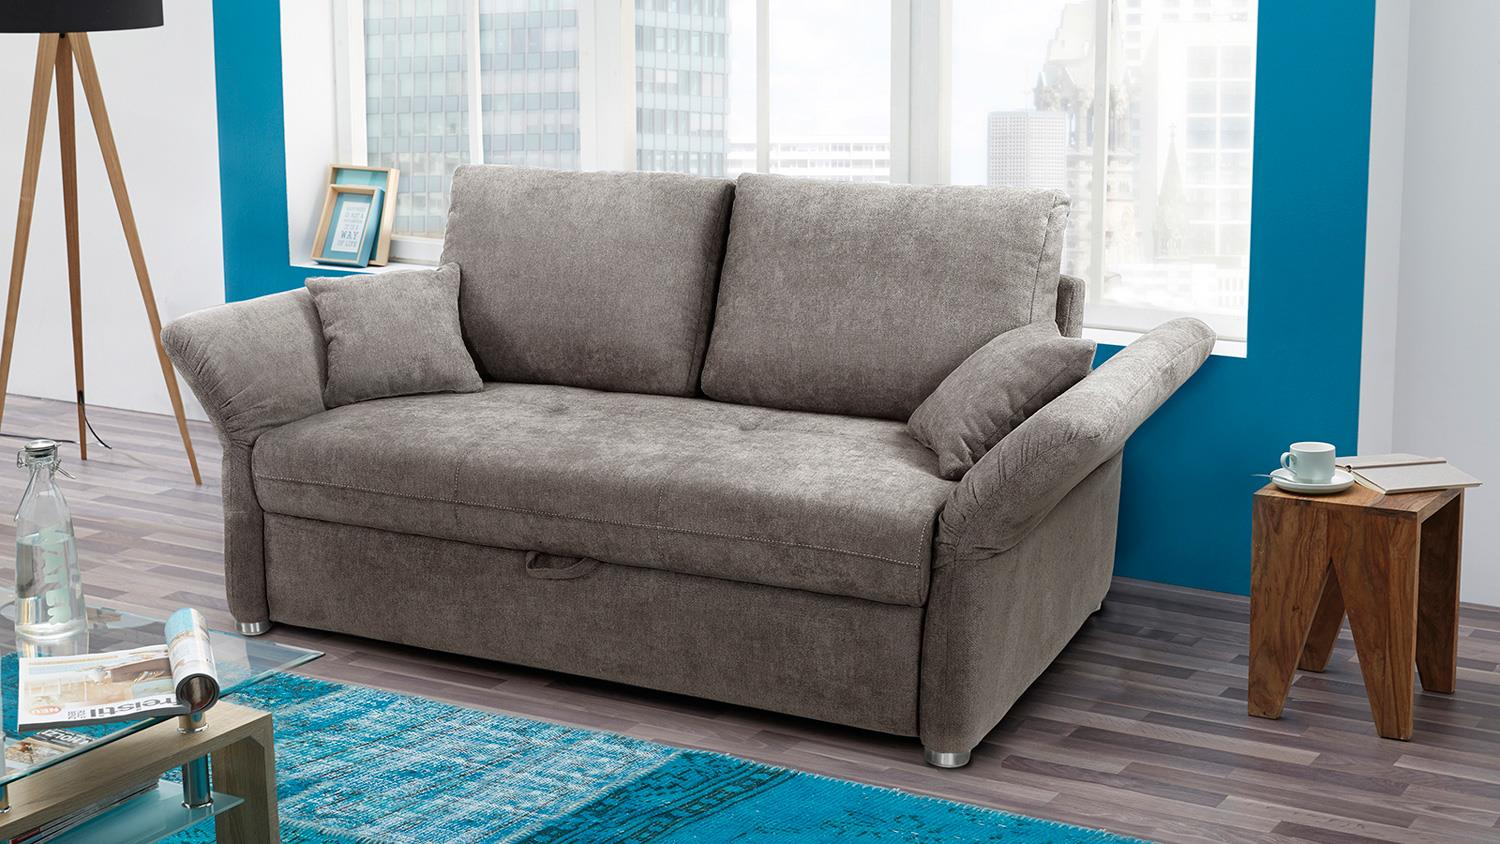 Freistil Rolf Benz Sessel Funktionssofa Luca Sofa In Greige Mit Bettfunktion 140 Cm